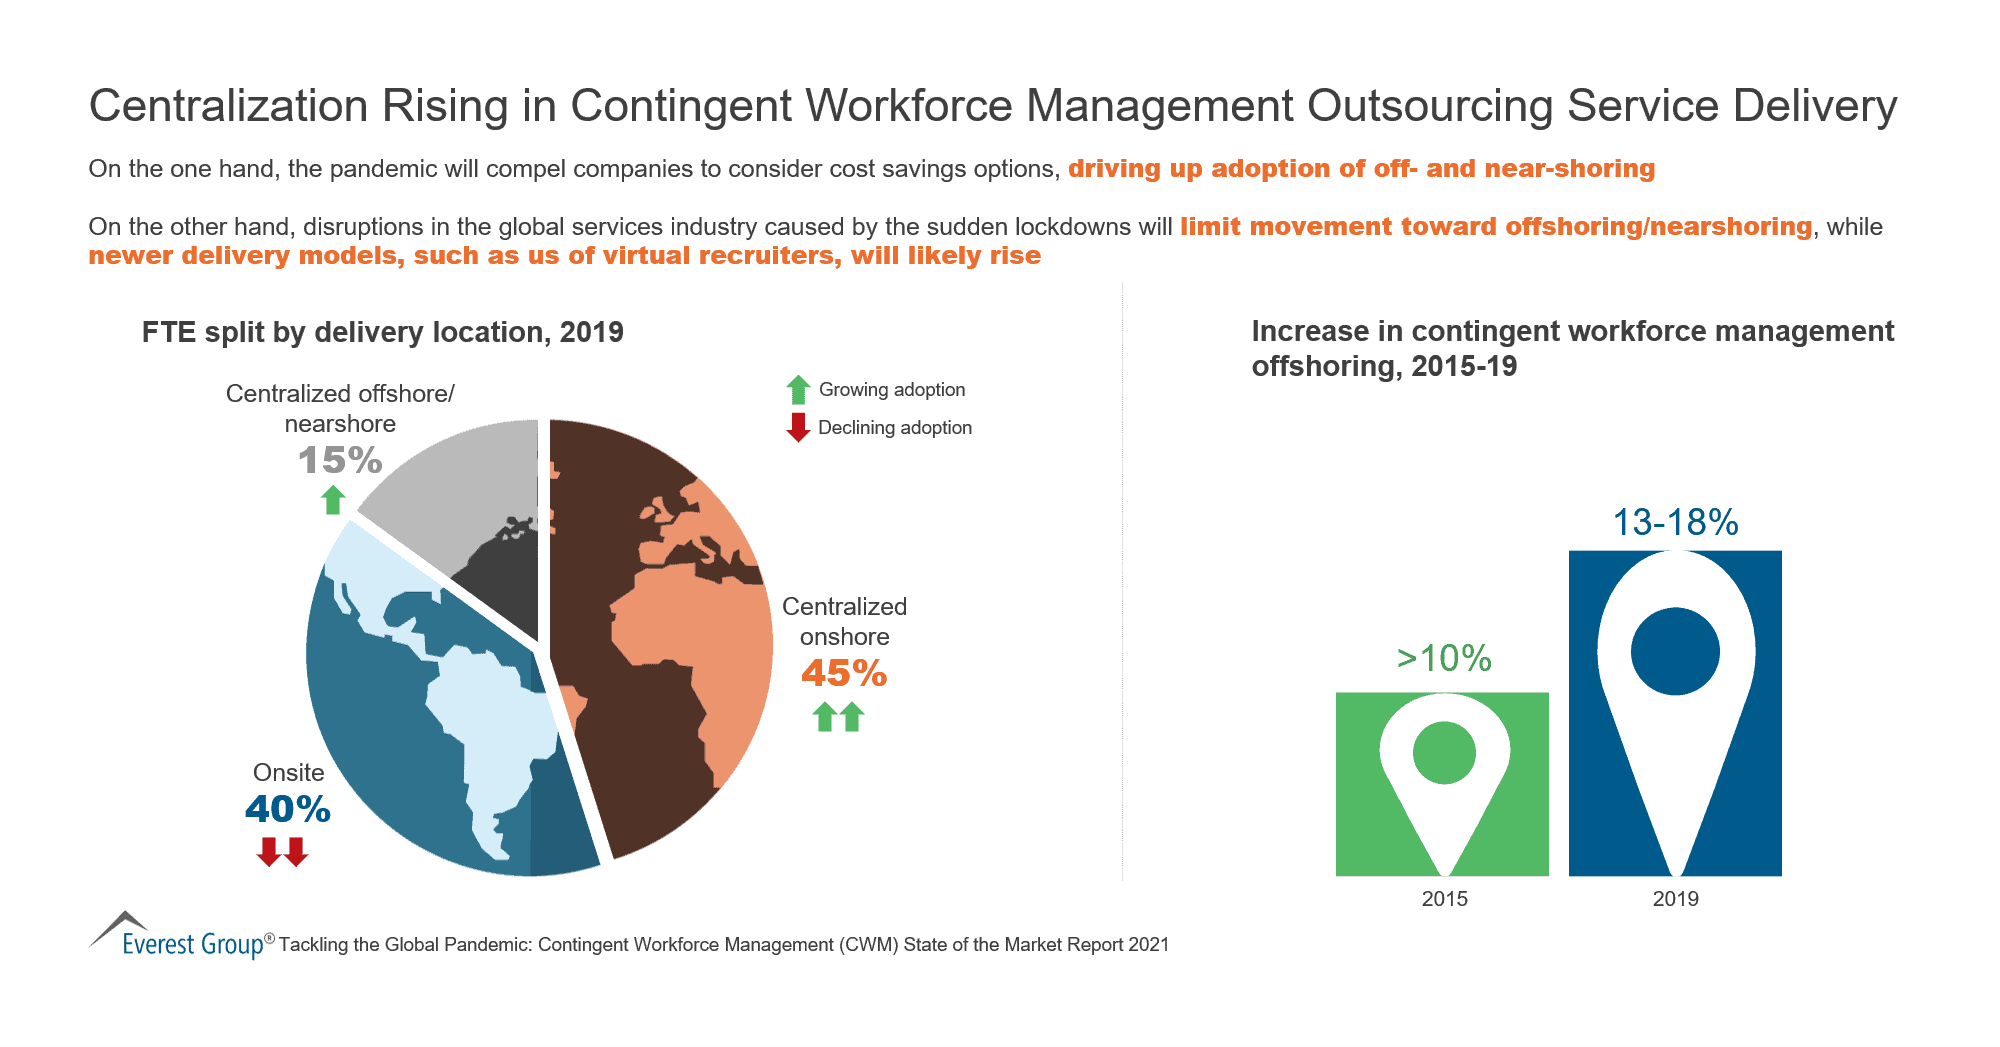 Centralization Rising in Contingent Workforce Management Outsourcing Service Delivery